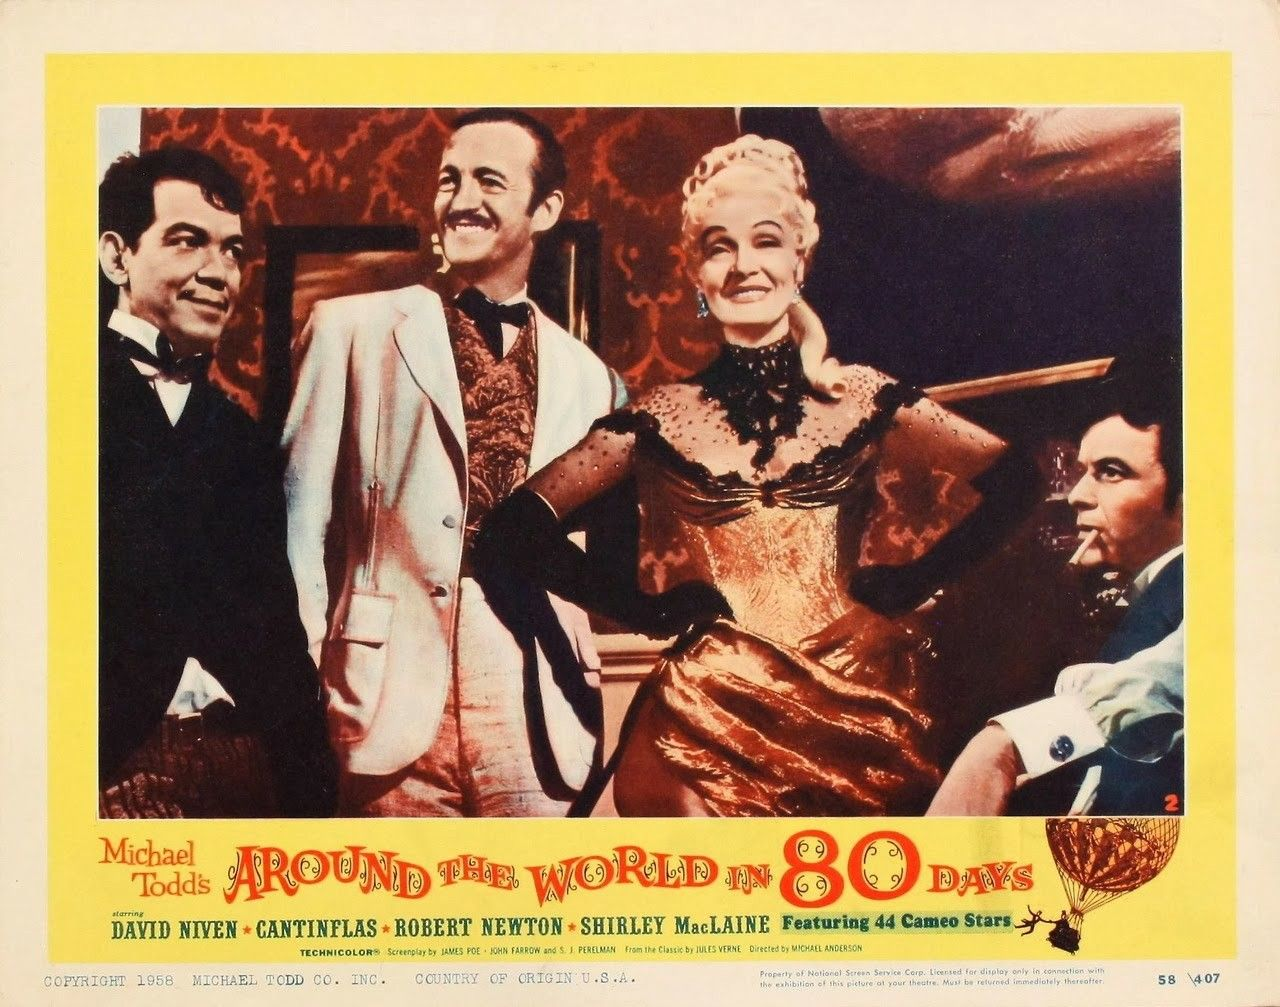 Around The World In 80 Days 1956 Lobby Card With Images